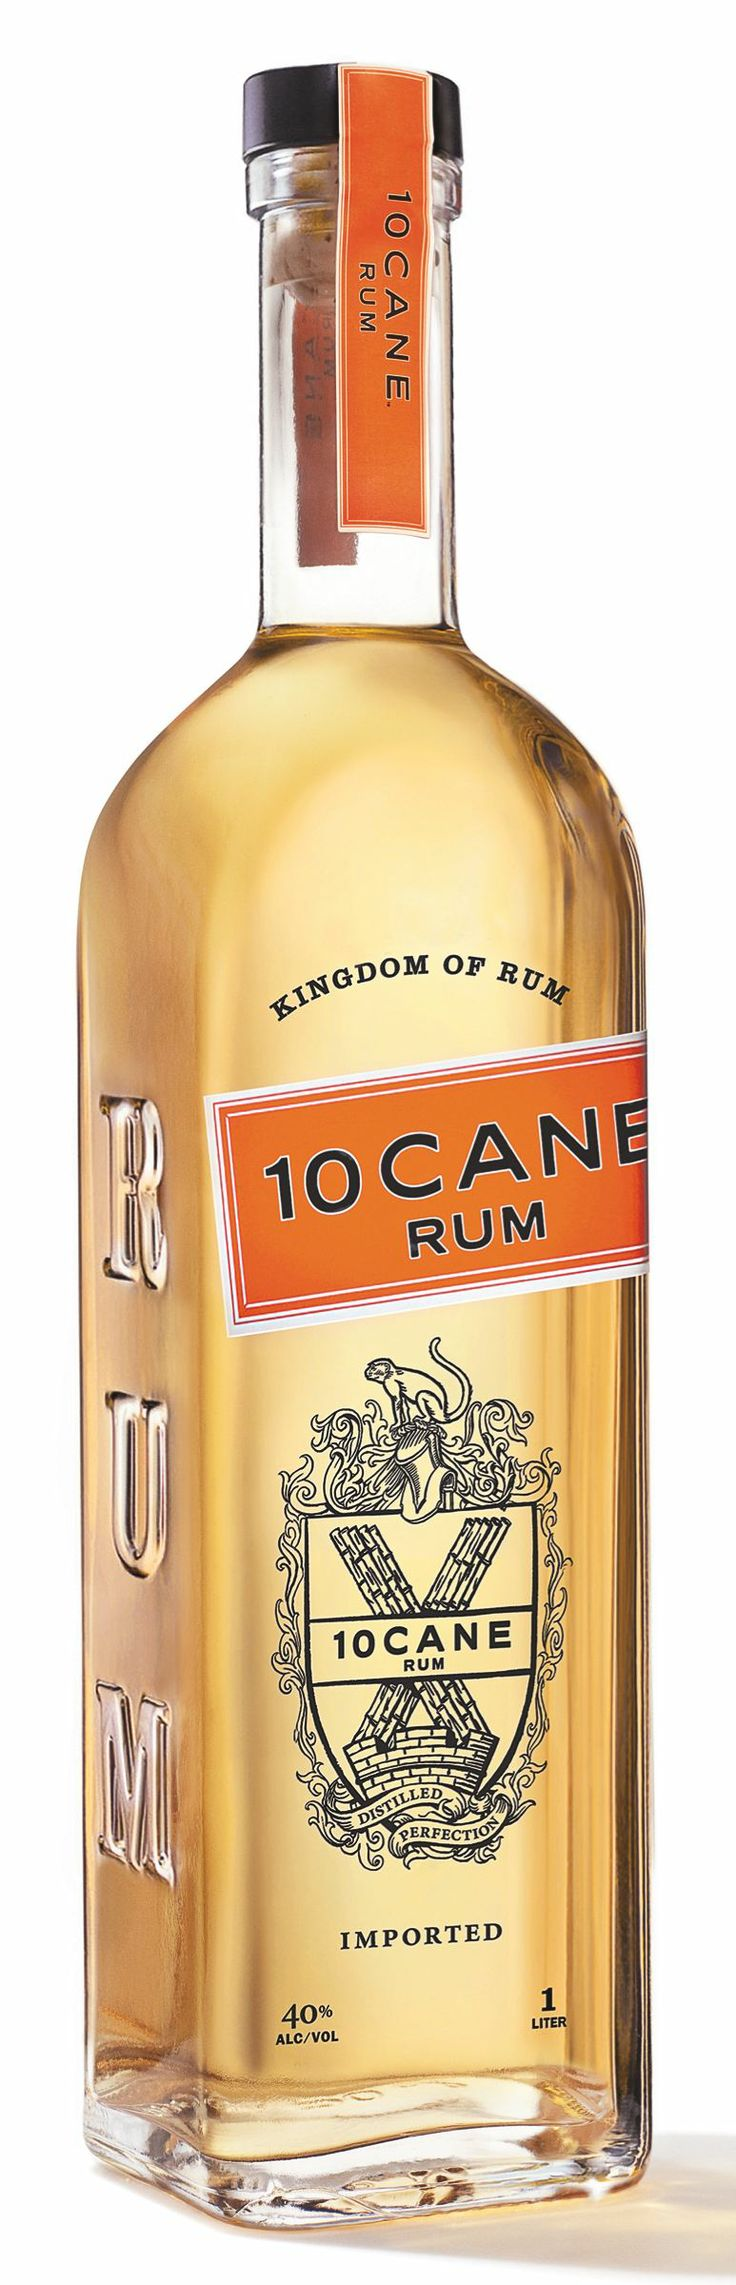 10Cane Rum Country Trinidad and Tobago Distiller